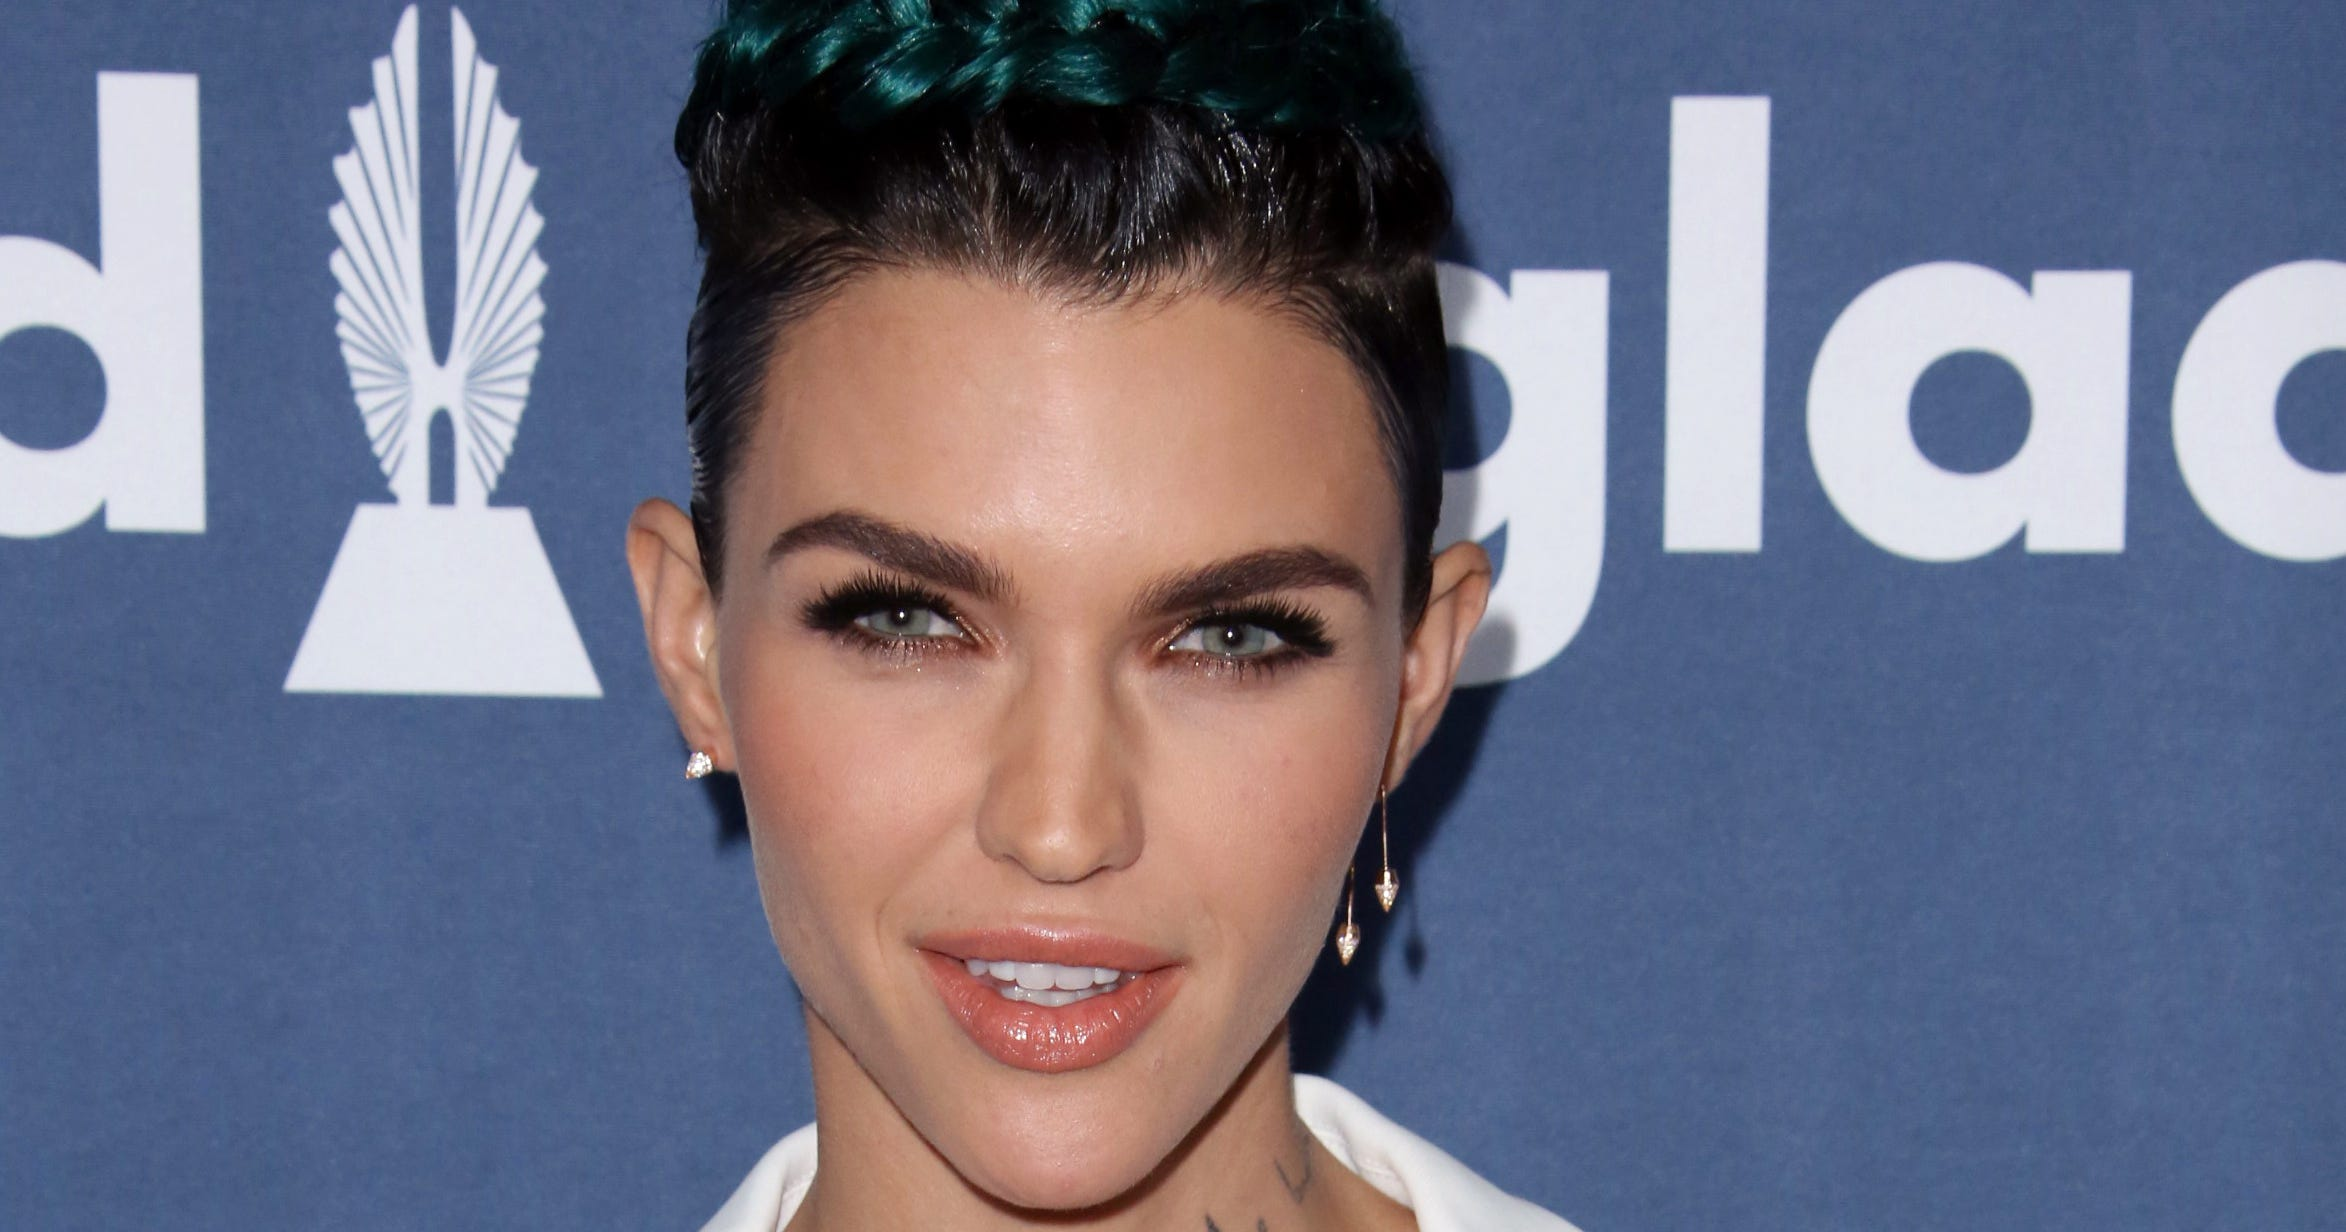 Ruby Rose Dating The Veronicas Singer Jess Origliasso